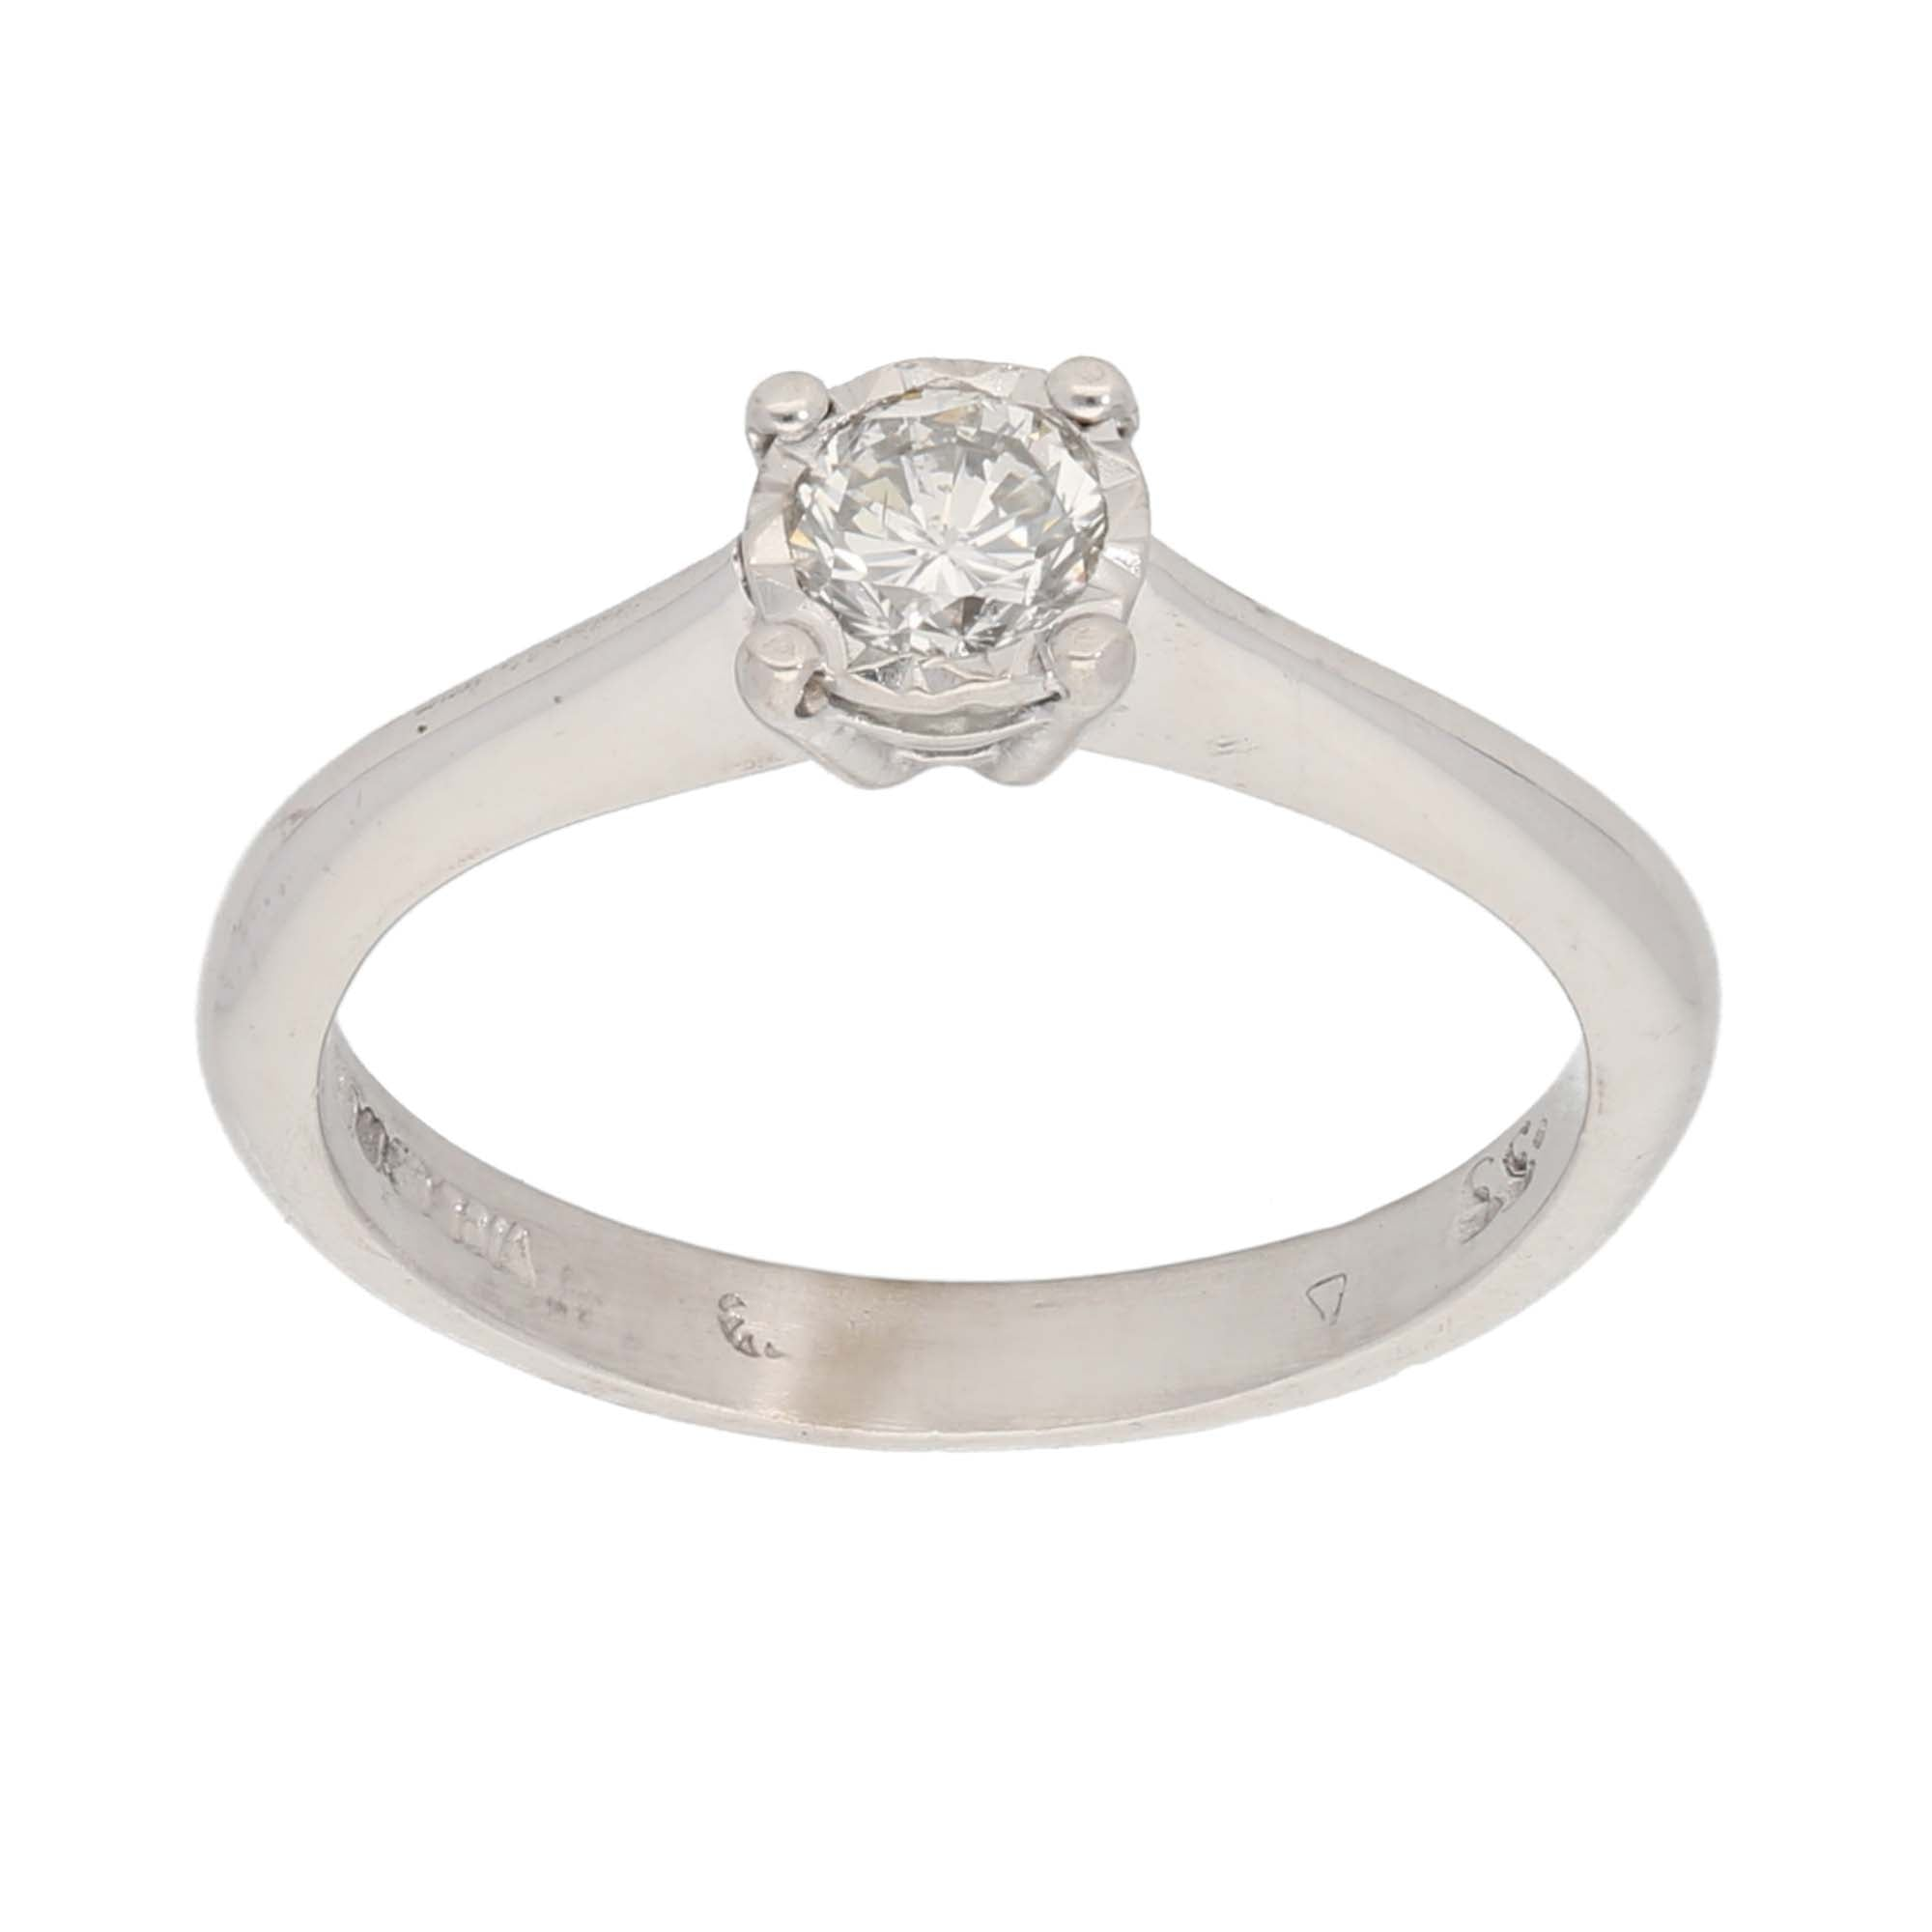 18ct White Gold 0.33ct Round Cut Diamond Ladies Solitaire Ring Size K